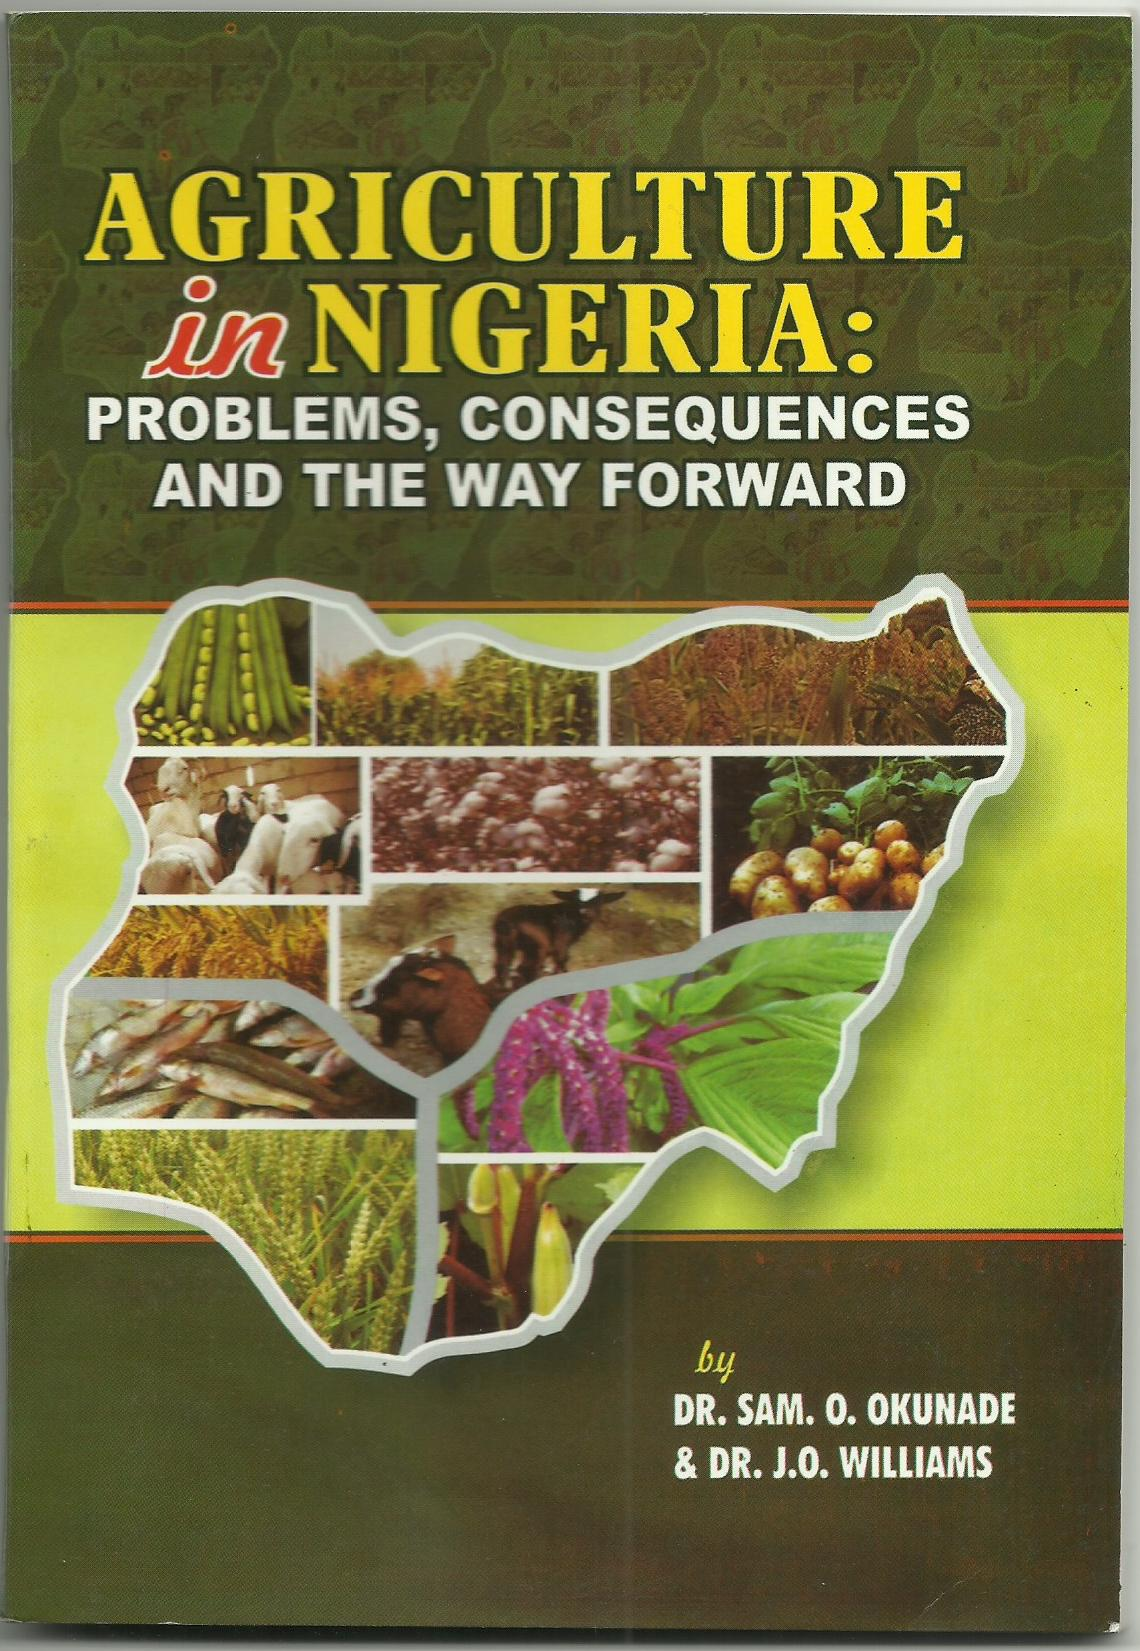 Cover of Agriculture in Nigeria:Problems, Consequences and the way forward